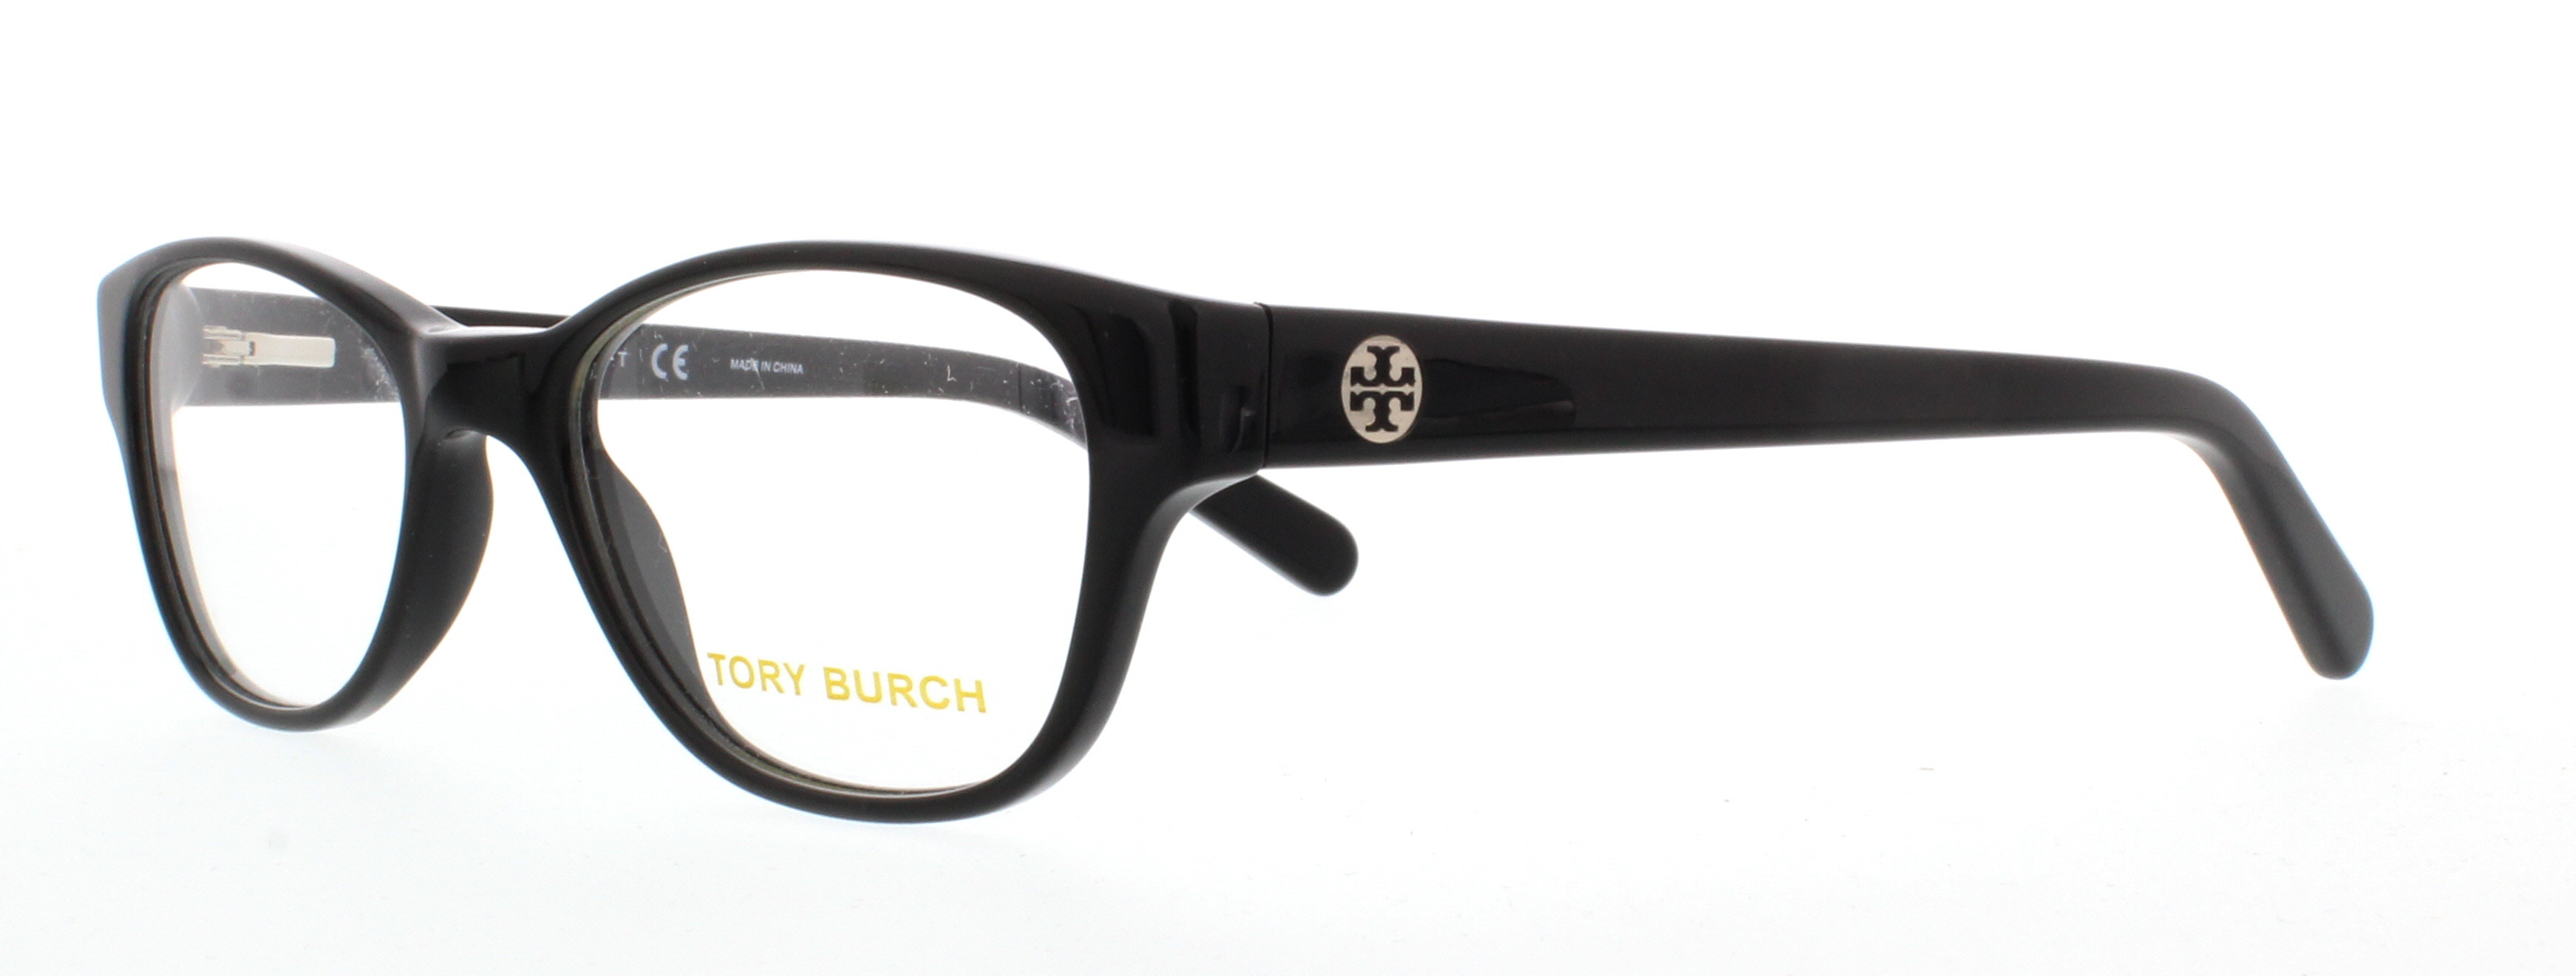 Picture of Tory Burch TY2031